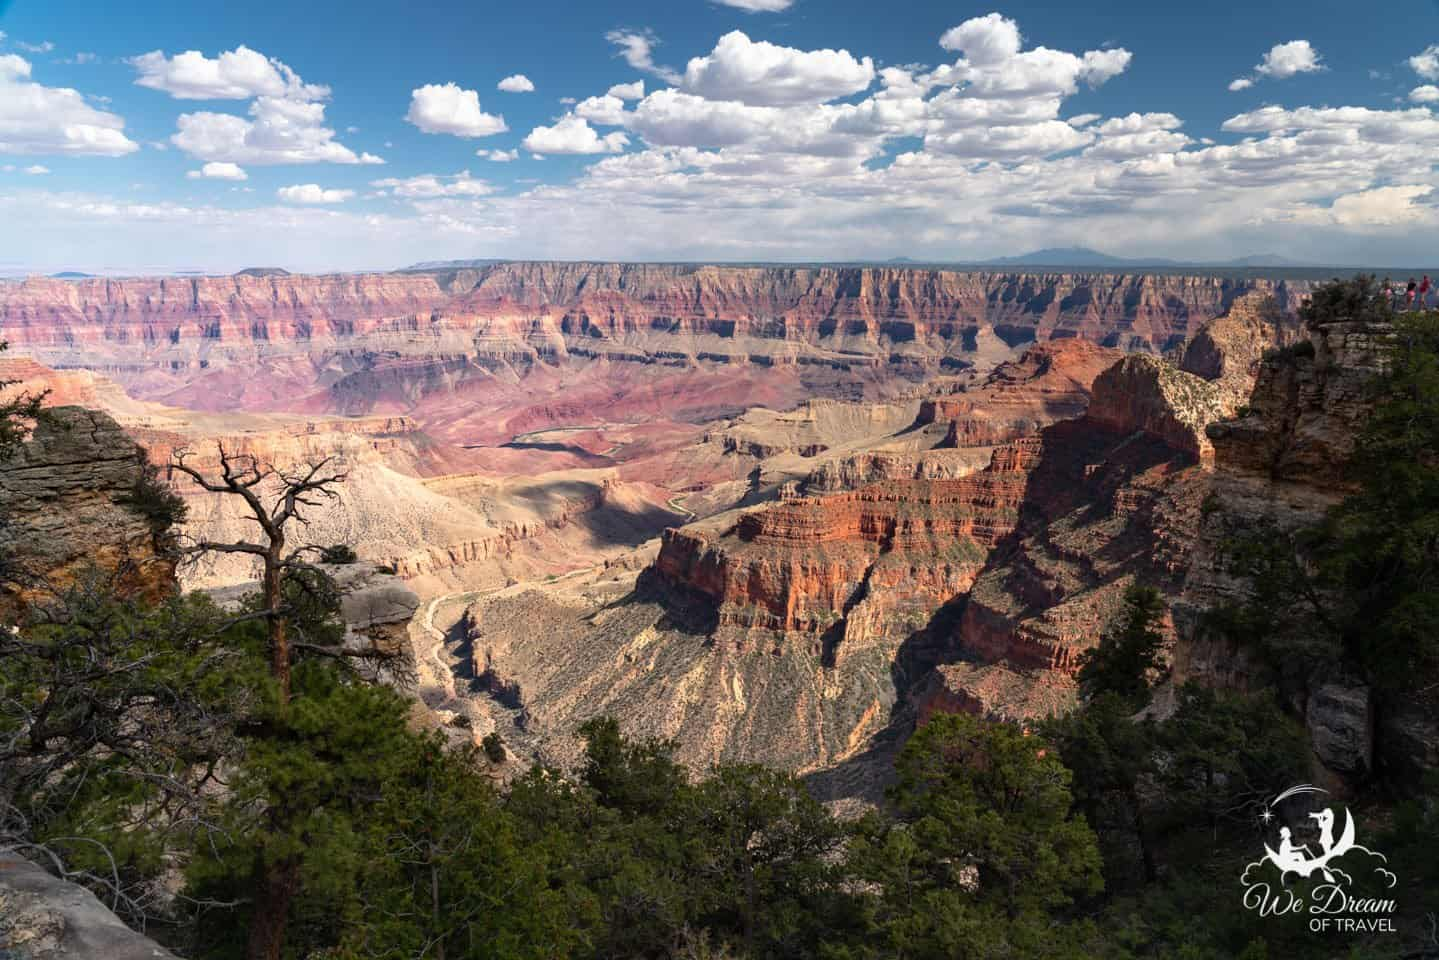 The view from Walhalla Overlook is one of my favorites on the Grand Canyon North Rim Scenic Drive.